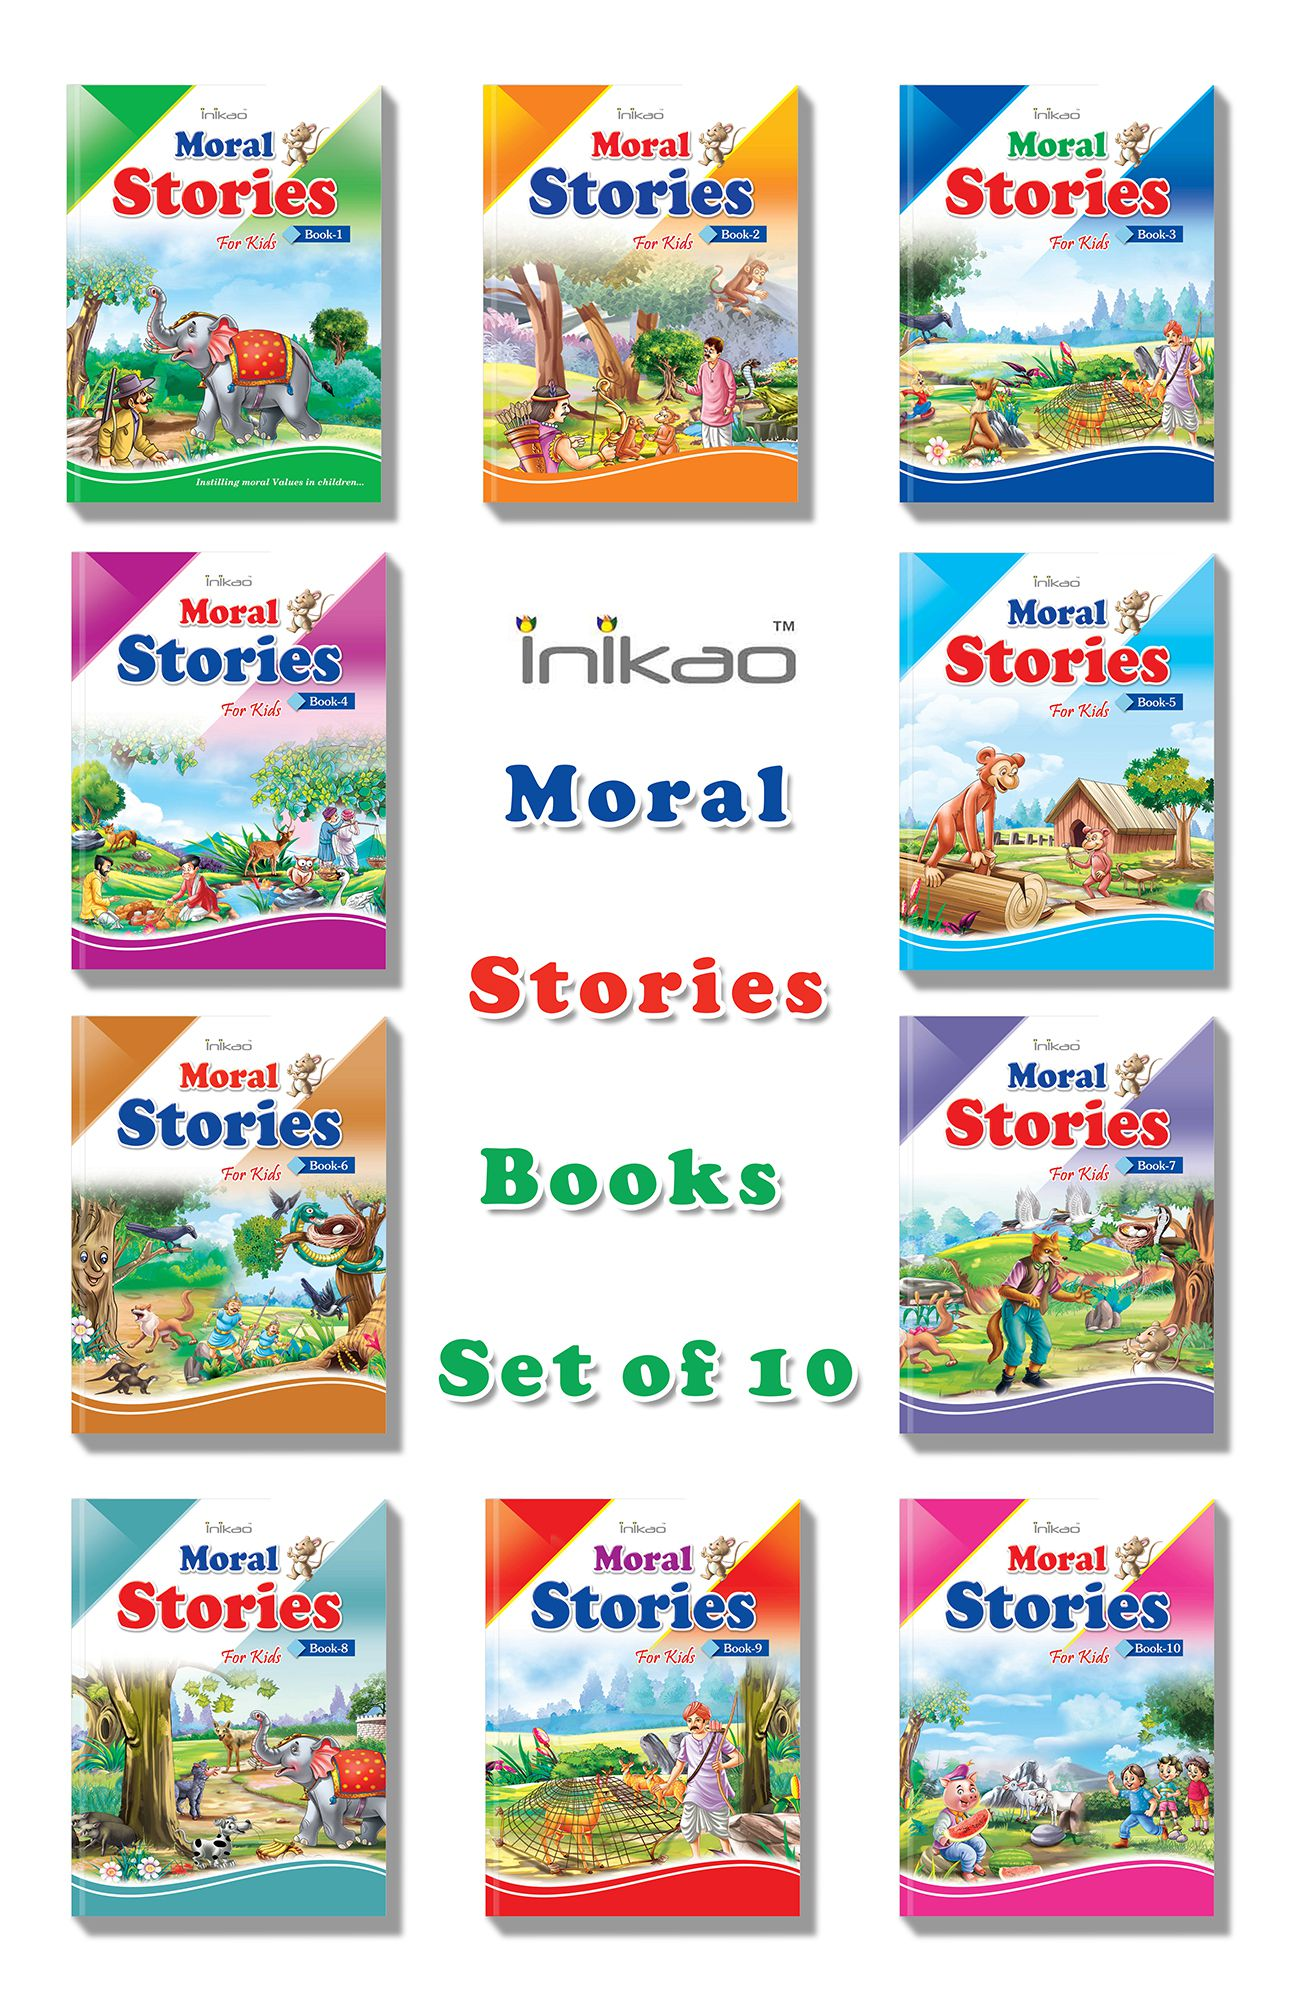 Story Books Set Of 10 In English With 101 Moral Stories